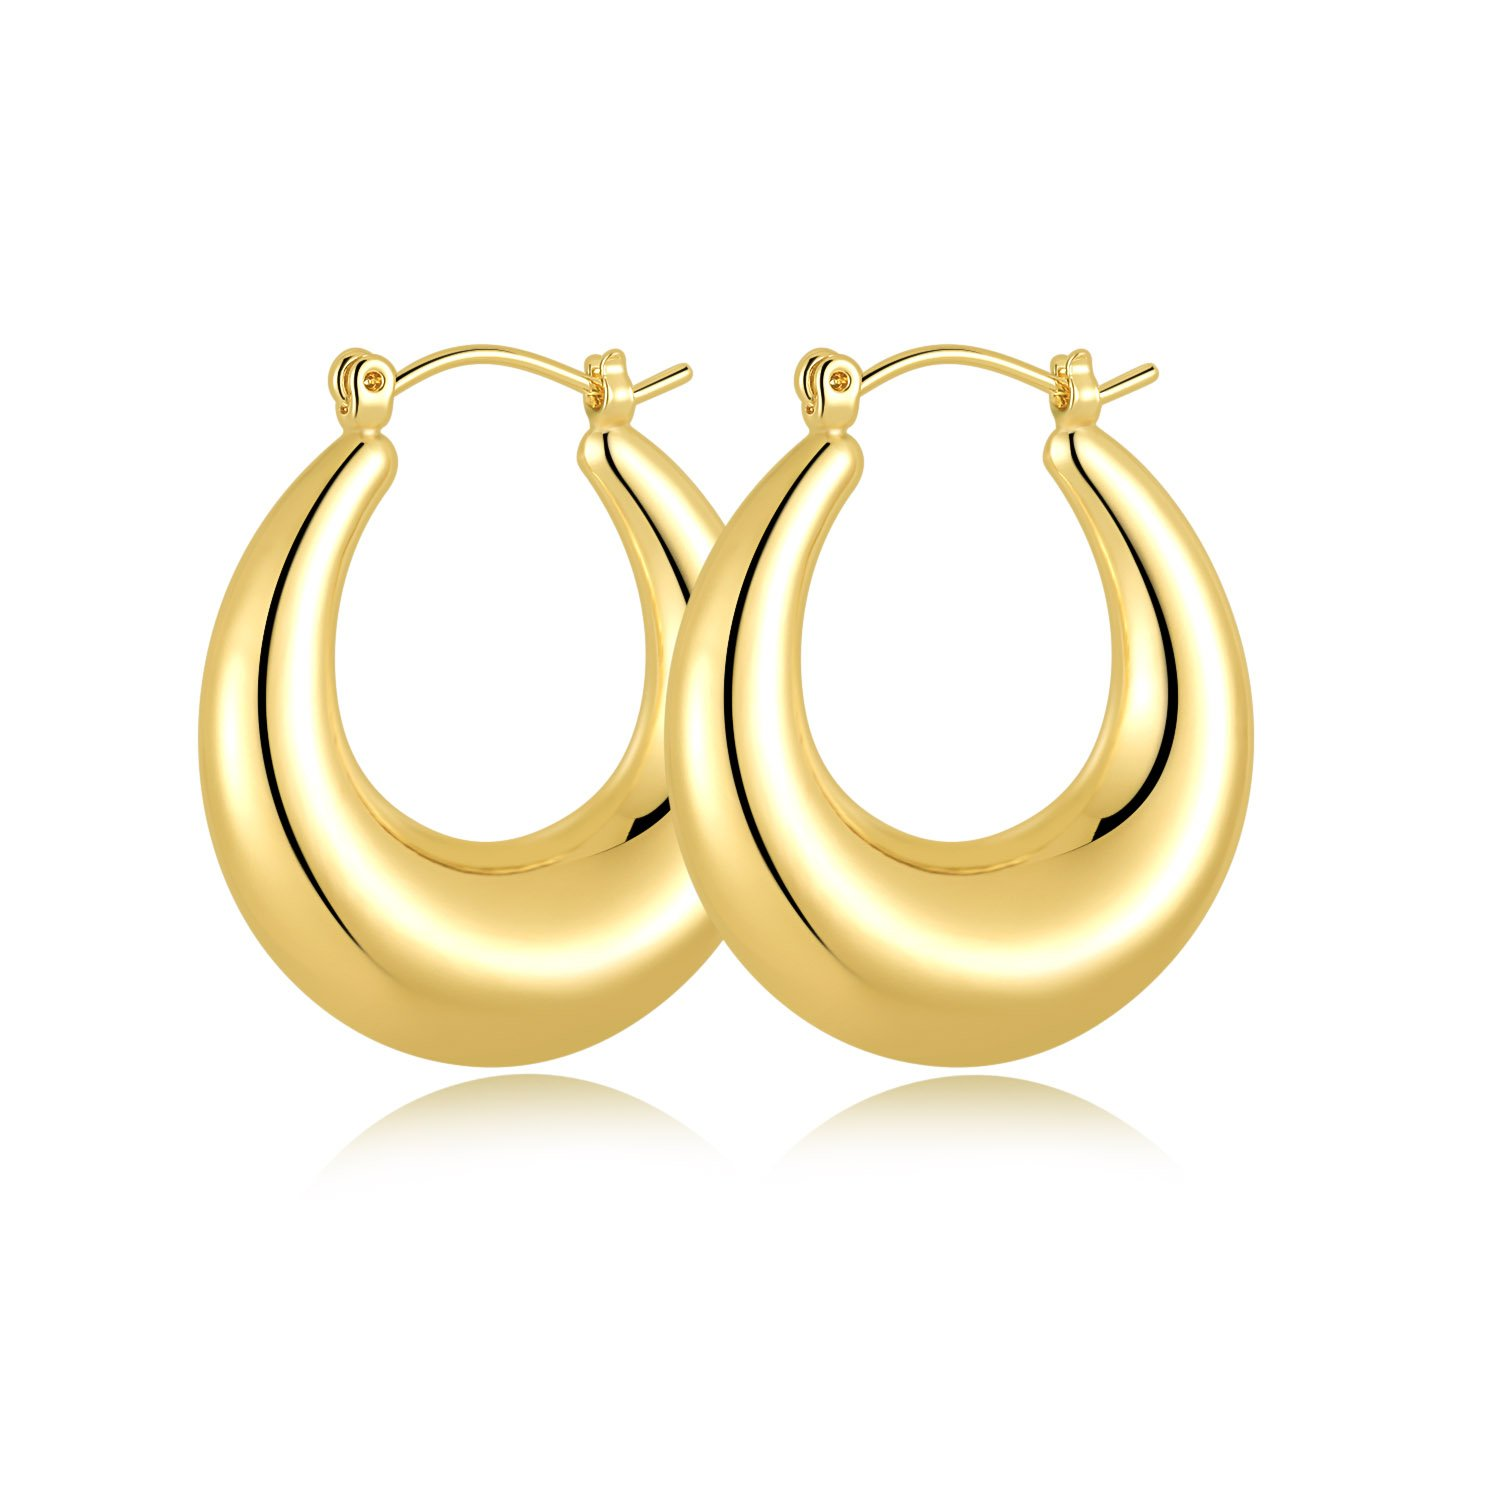 14K Gold Plated Big Hoop Earrings for Women,26X30mm,Unique Fashion Earrings for Girls.